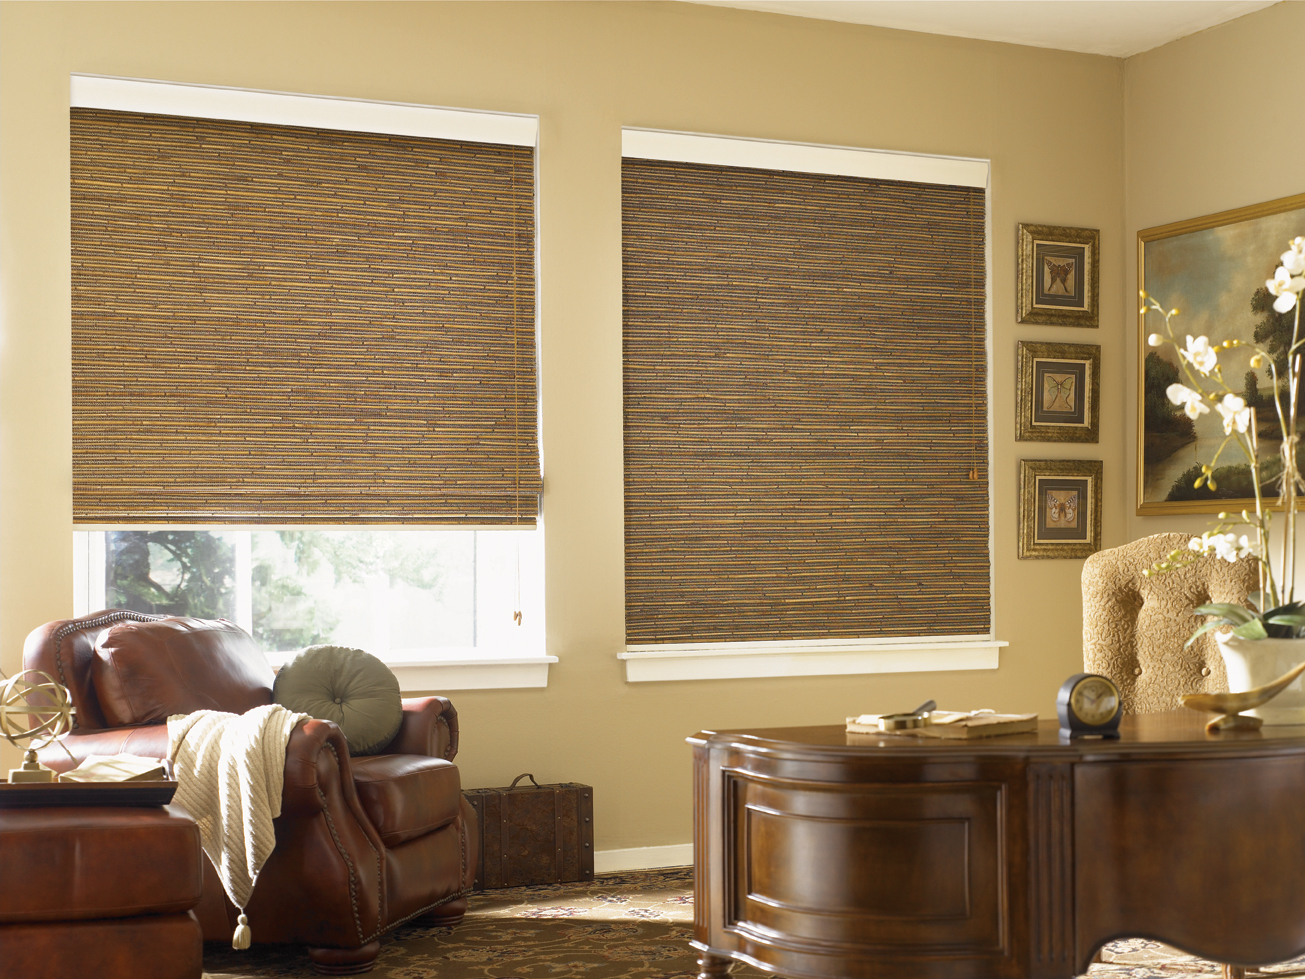 Enjoy The Elegant Woven Wood Shades Carehomedecor